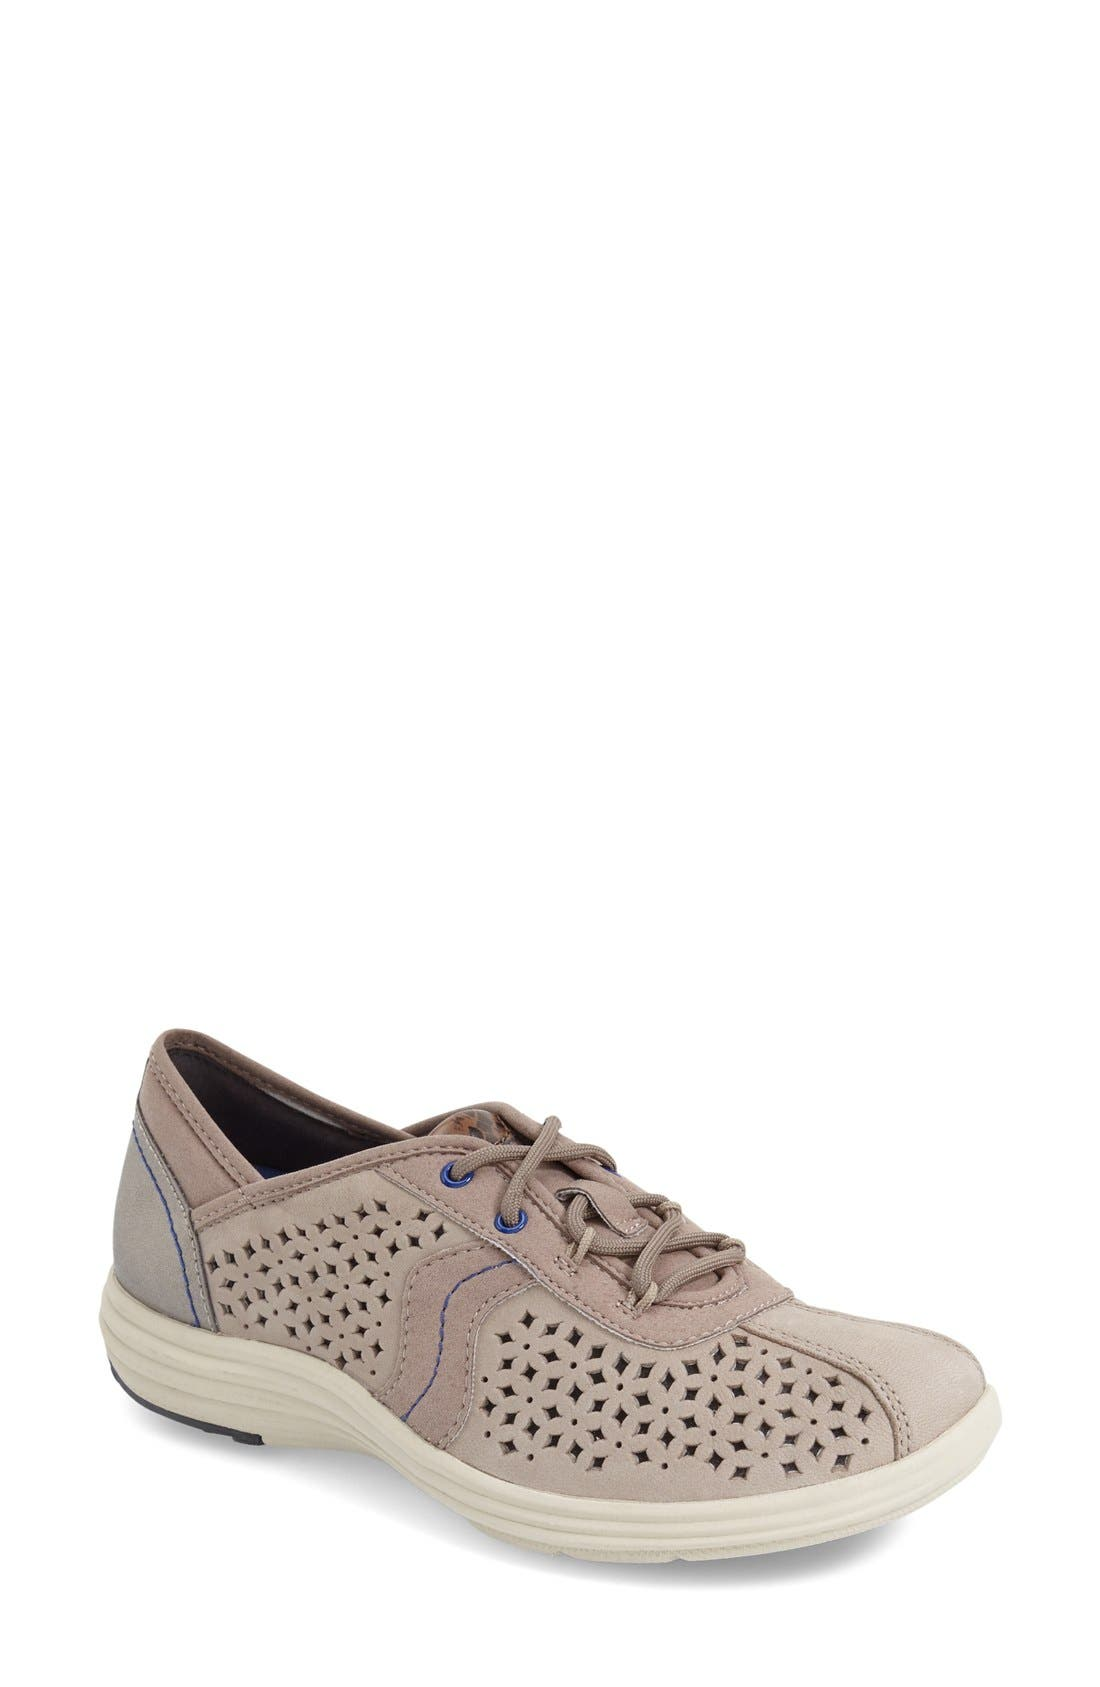 Alternate Image 1 Selected - Aravon 'Betty' Sneaker (Women)